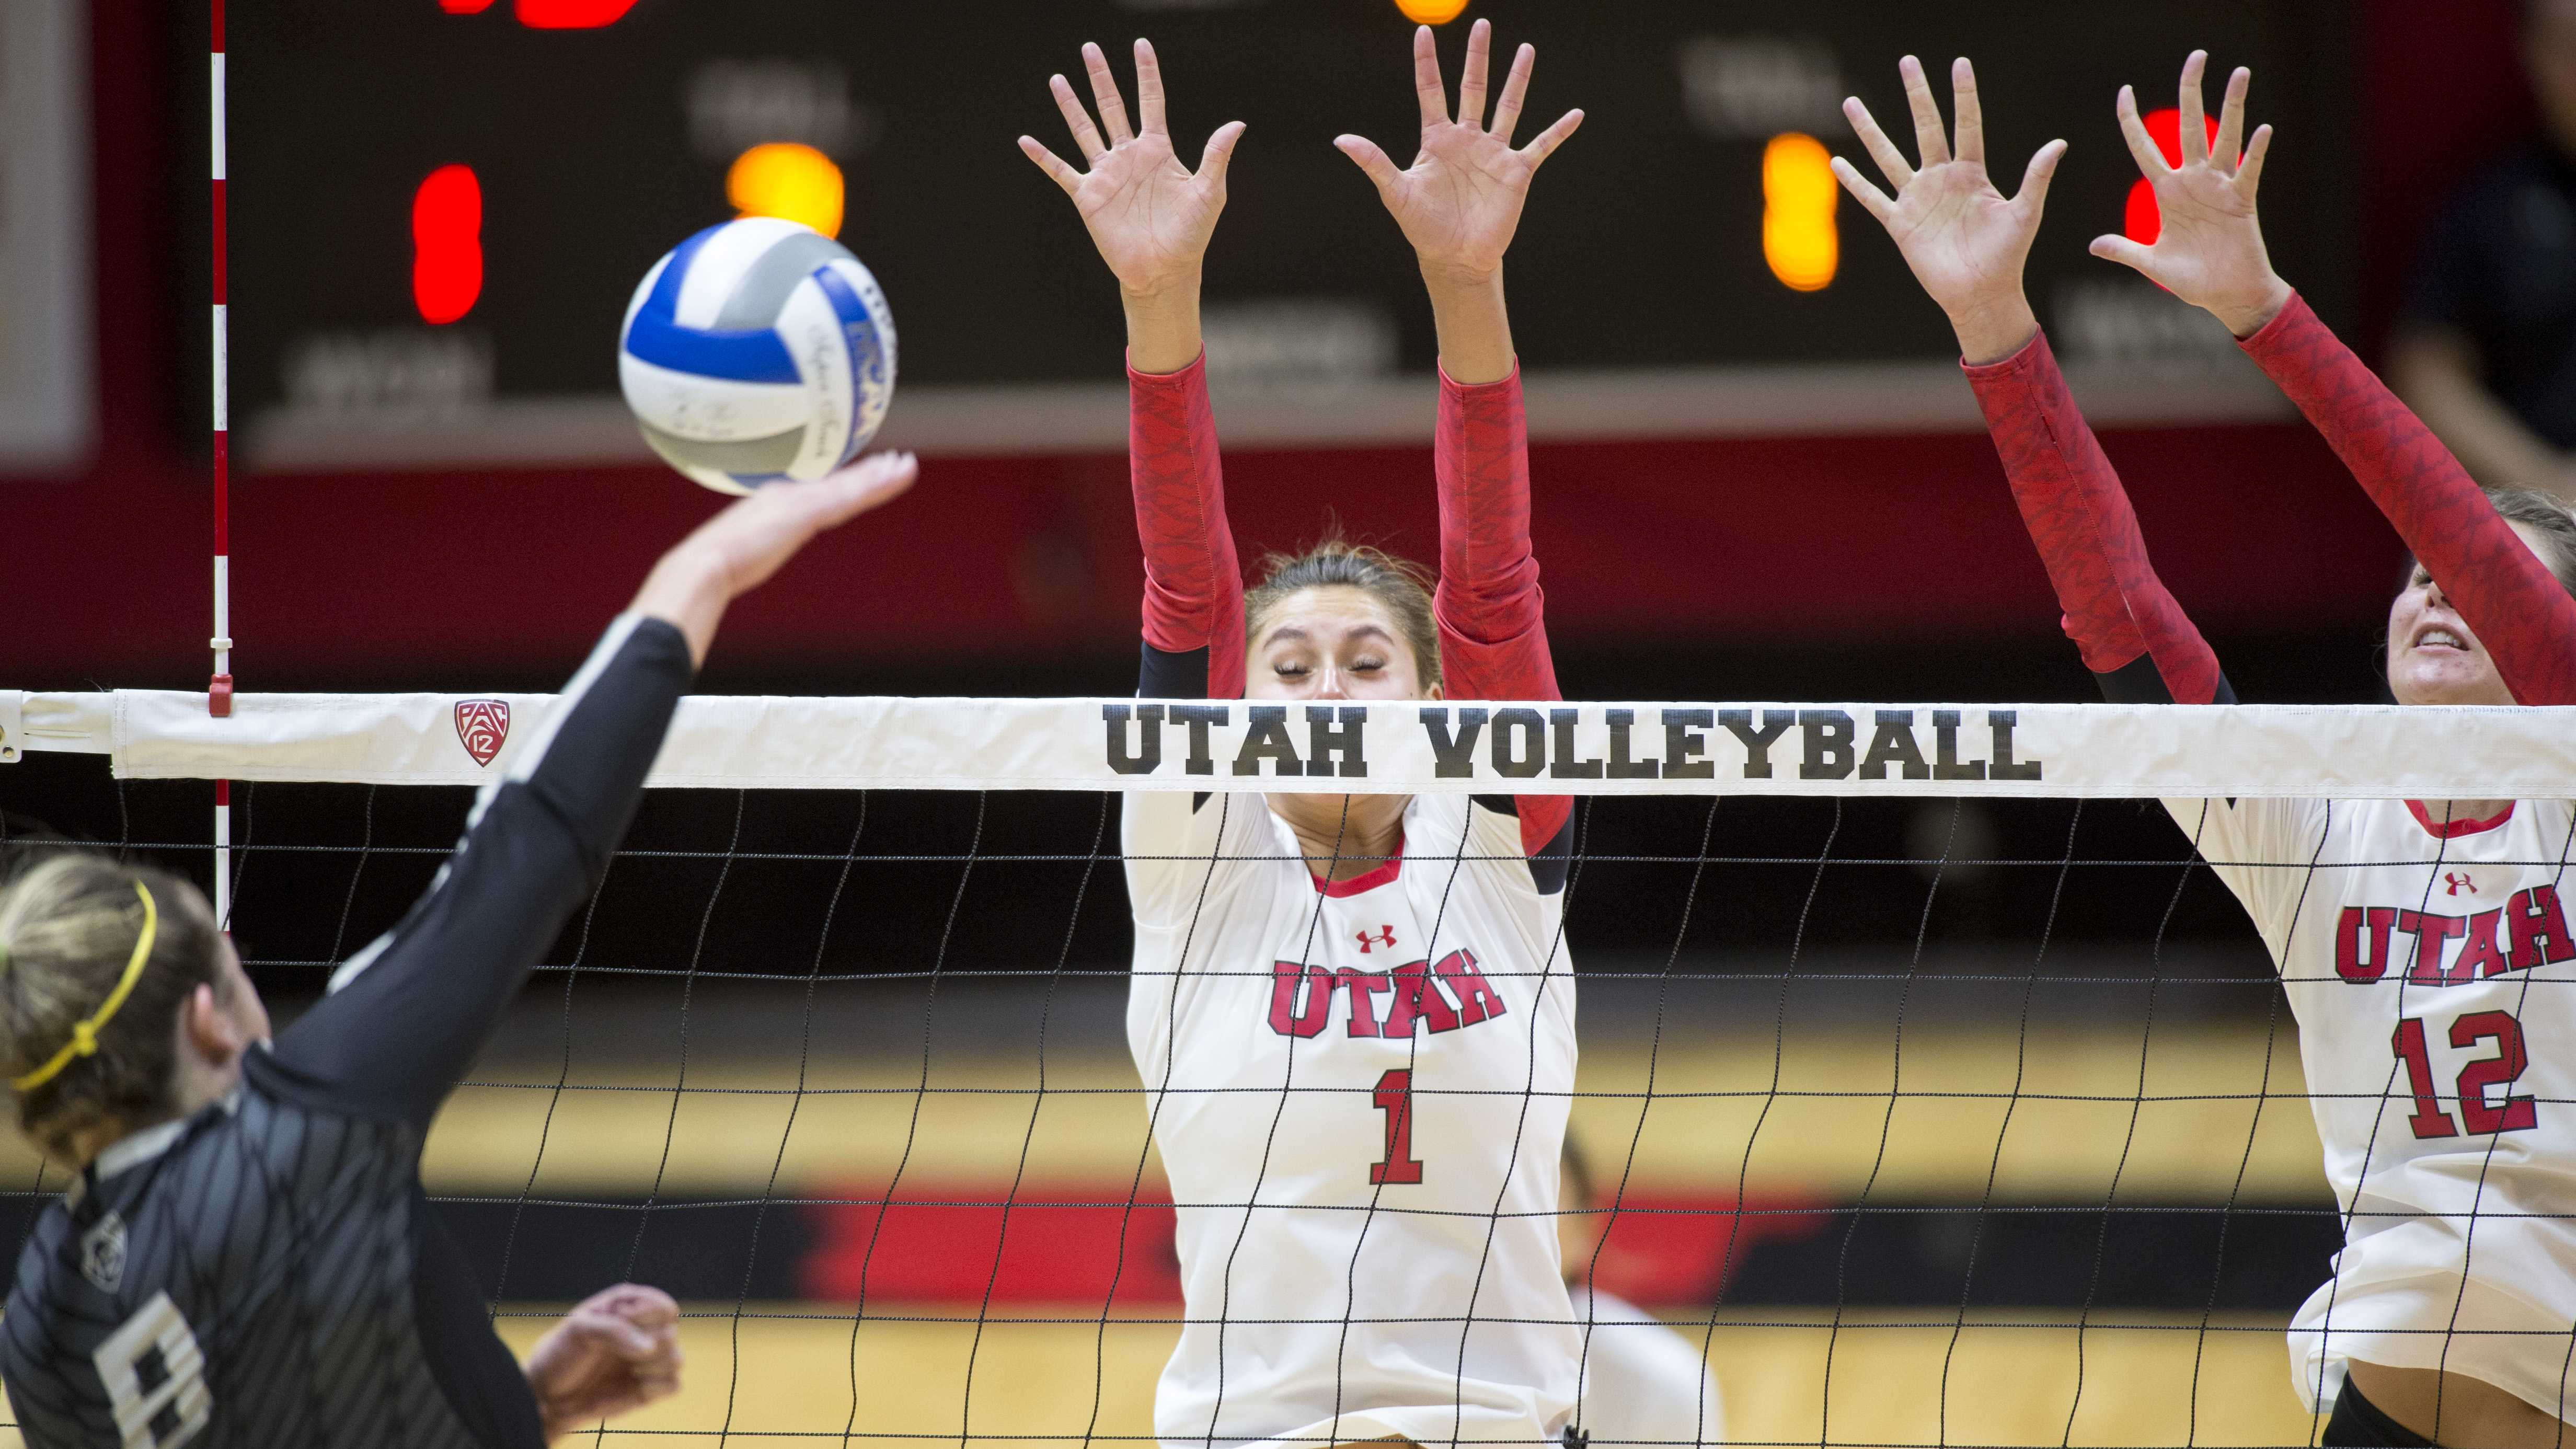 University of Utah Volleyball freshman outside hitter Dani Barton (1) and junior middle blocker Berkeley Oblad (12) leap to block a spike in a set of matches vs. The Oregon Ducks at the Huntsman Center in Salt Lake City, UT on Friday, Sept. 29, 2017  (Photo by Kiffer Creveling | The Daily Utah Chronicle)